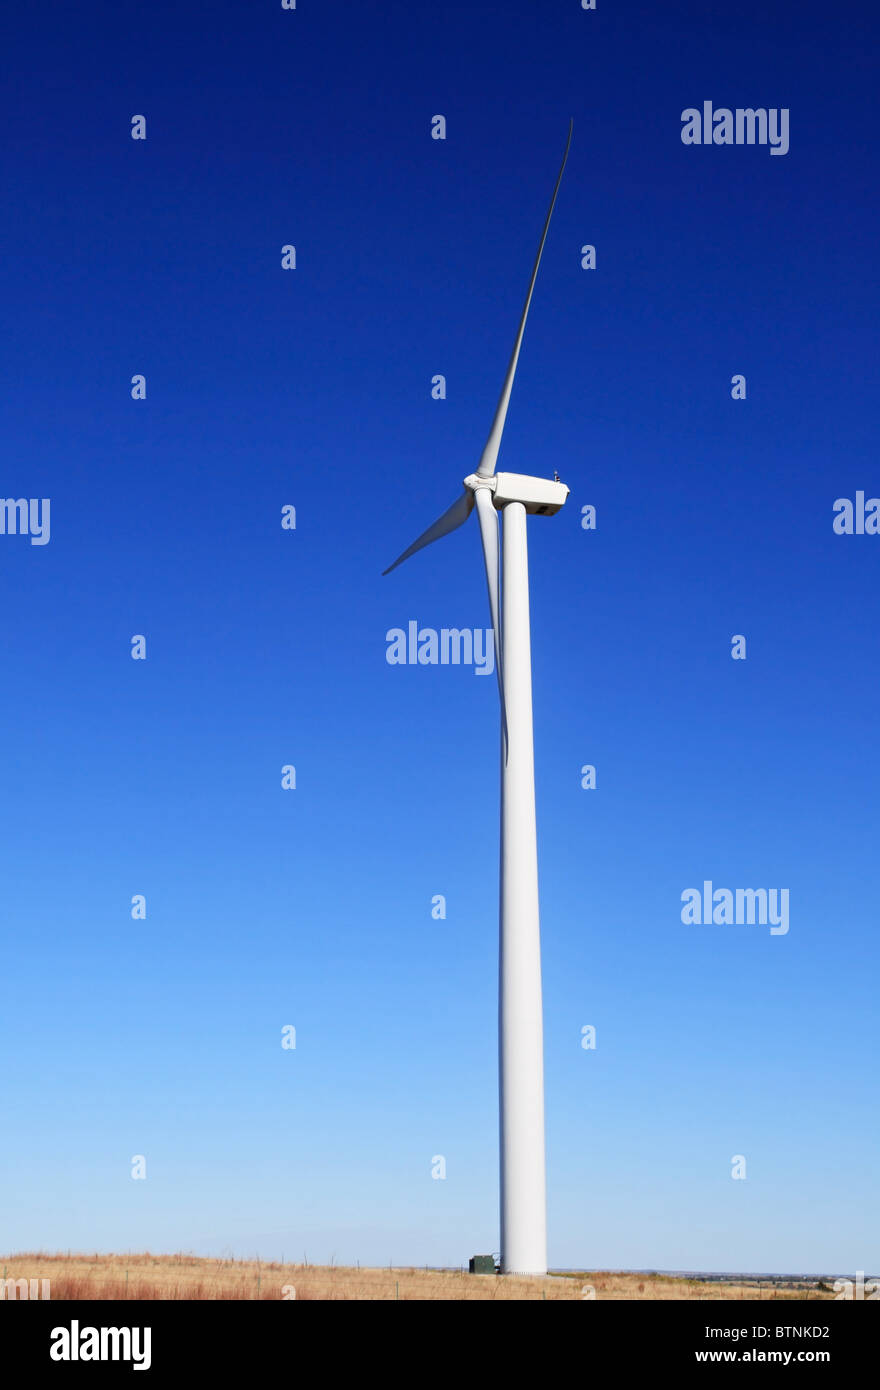 vertical image of tall white electric windmill or wind turbine on a flat prairie with blue sky background - Stock Image